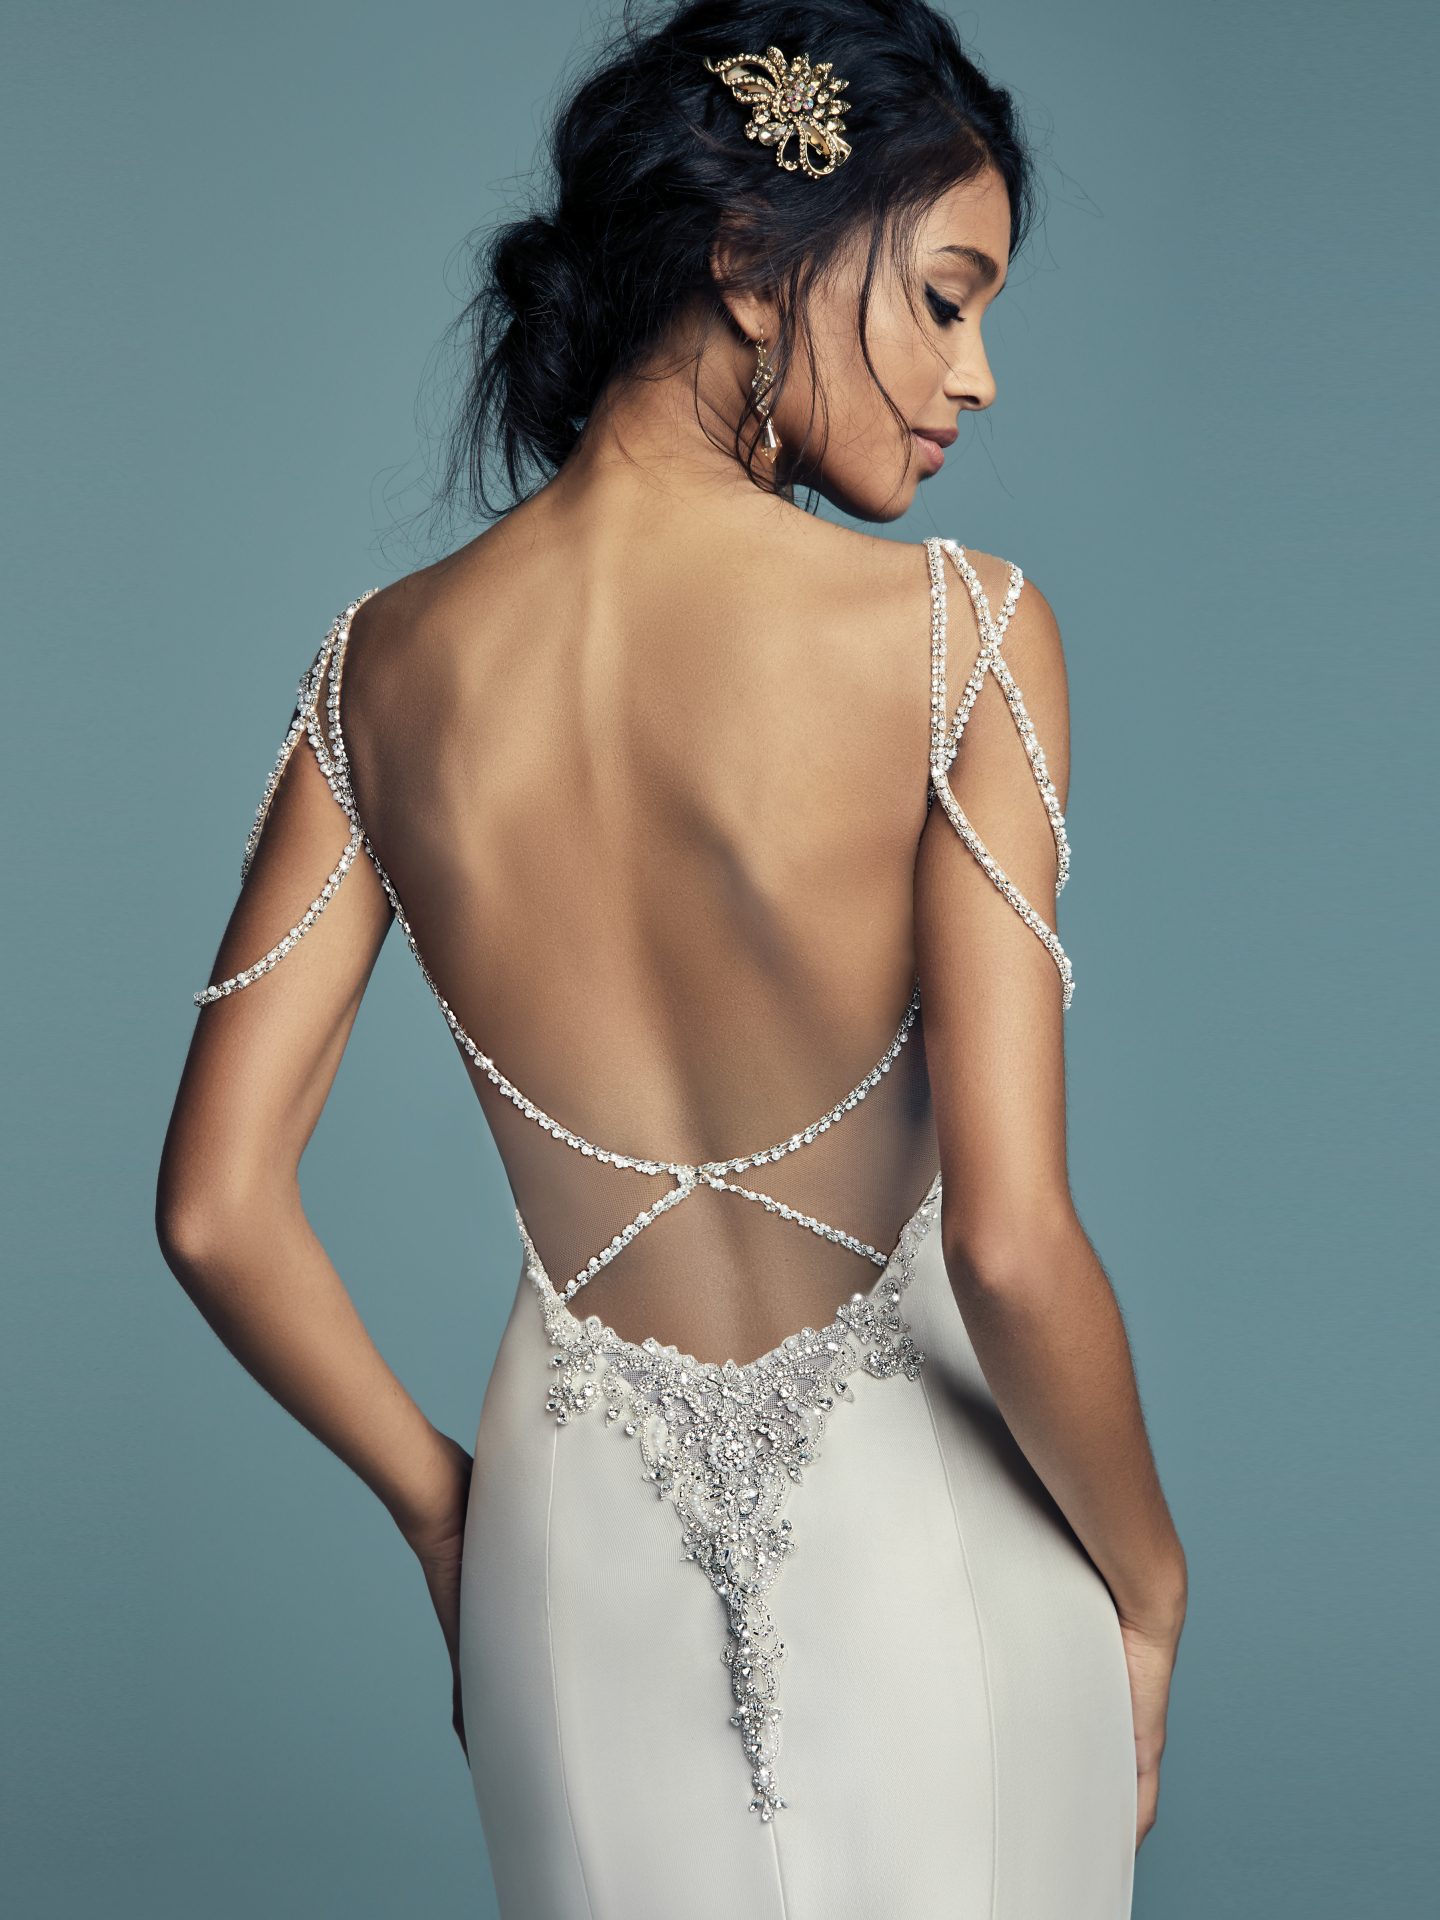 15 Gorgeous Statement-Back Gowns for the Stylish Bride - Gentry wedding dress with statement back by Maggie Sottero